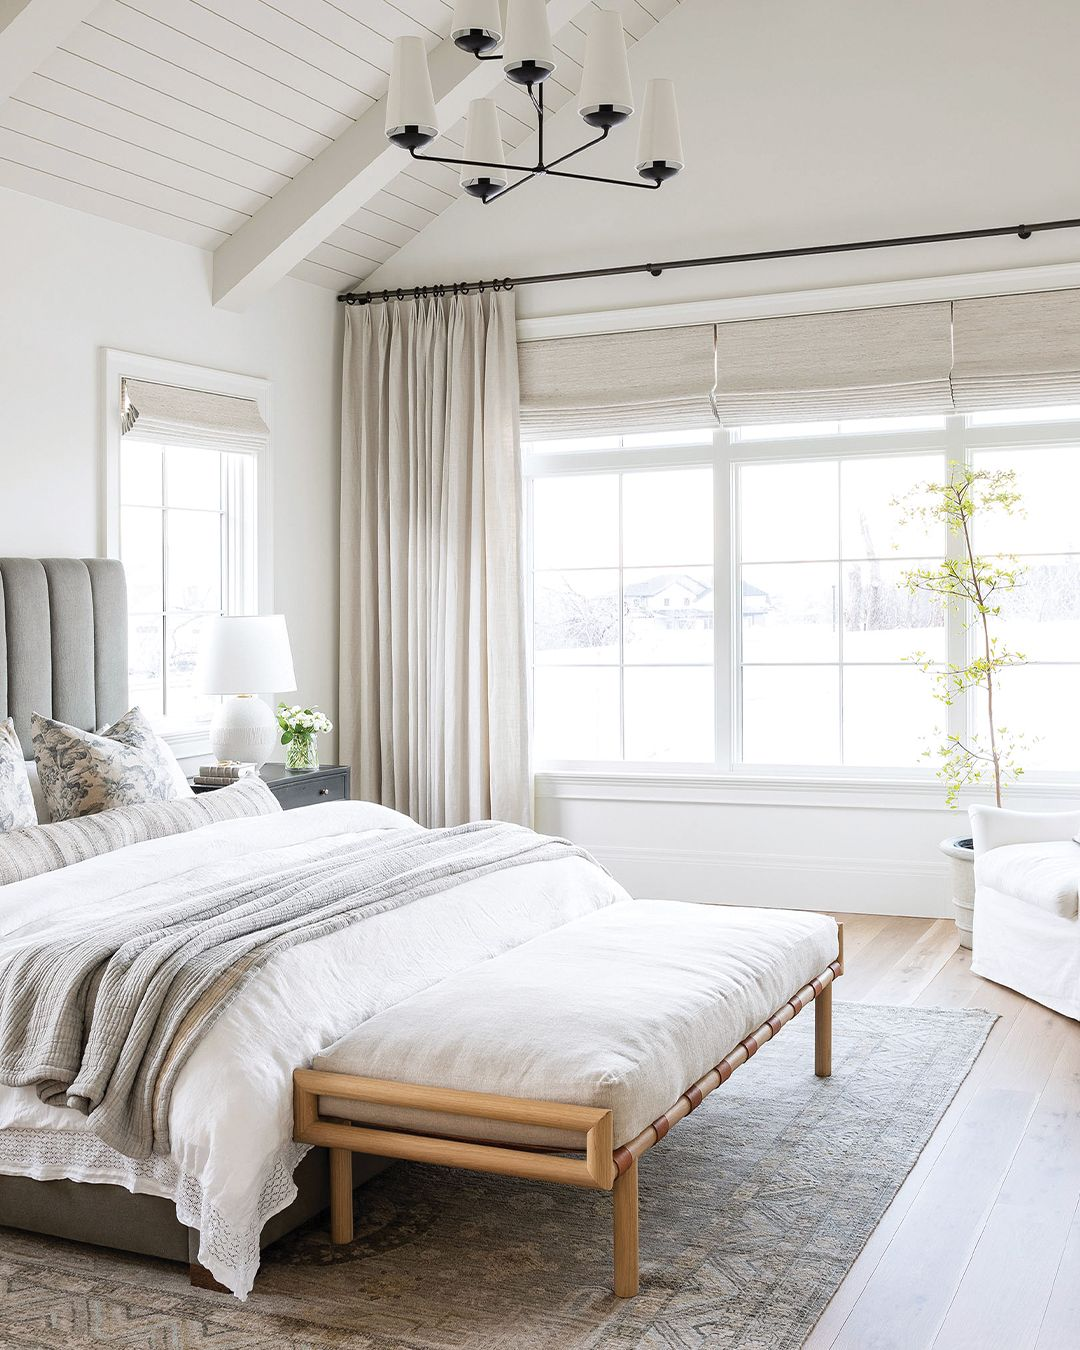 The Windows Of Your Dreams In 2020 Master Bedrooms Decor Bedroom Design Master Bedroom Windows